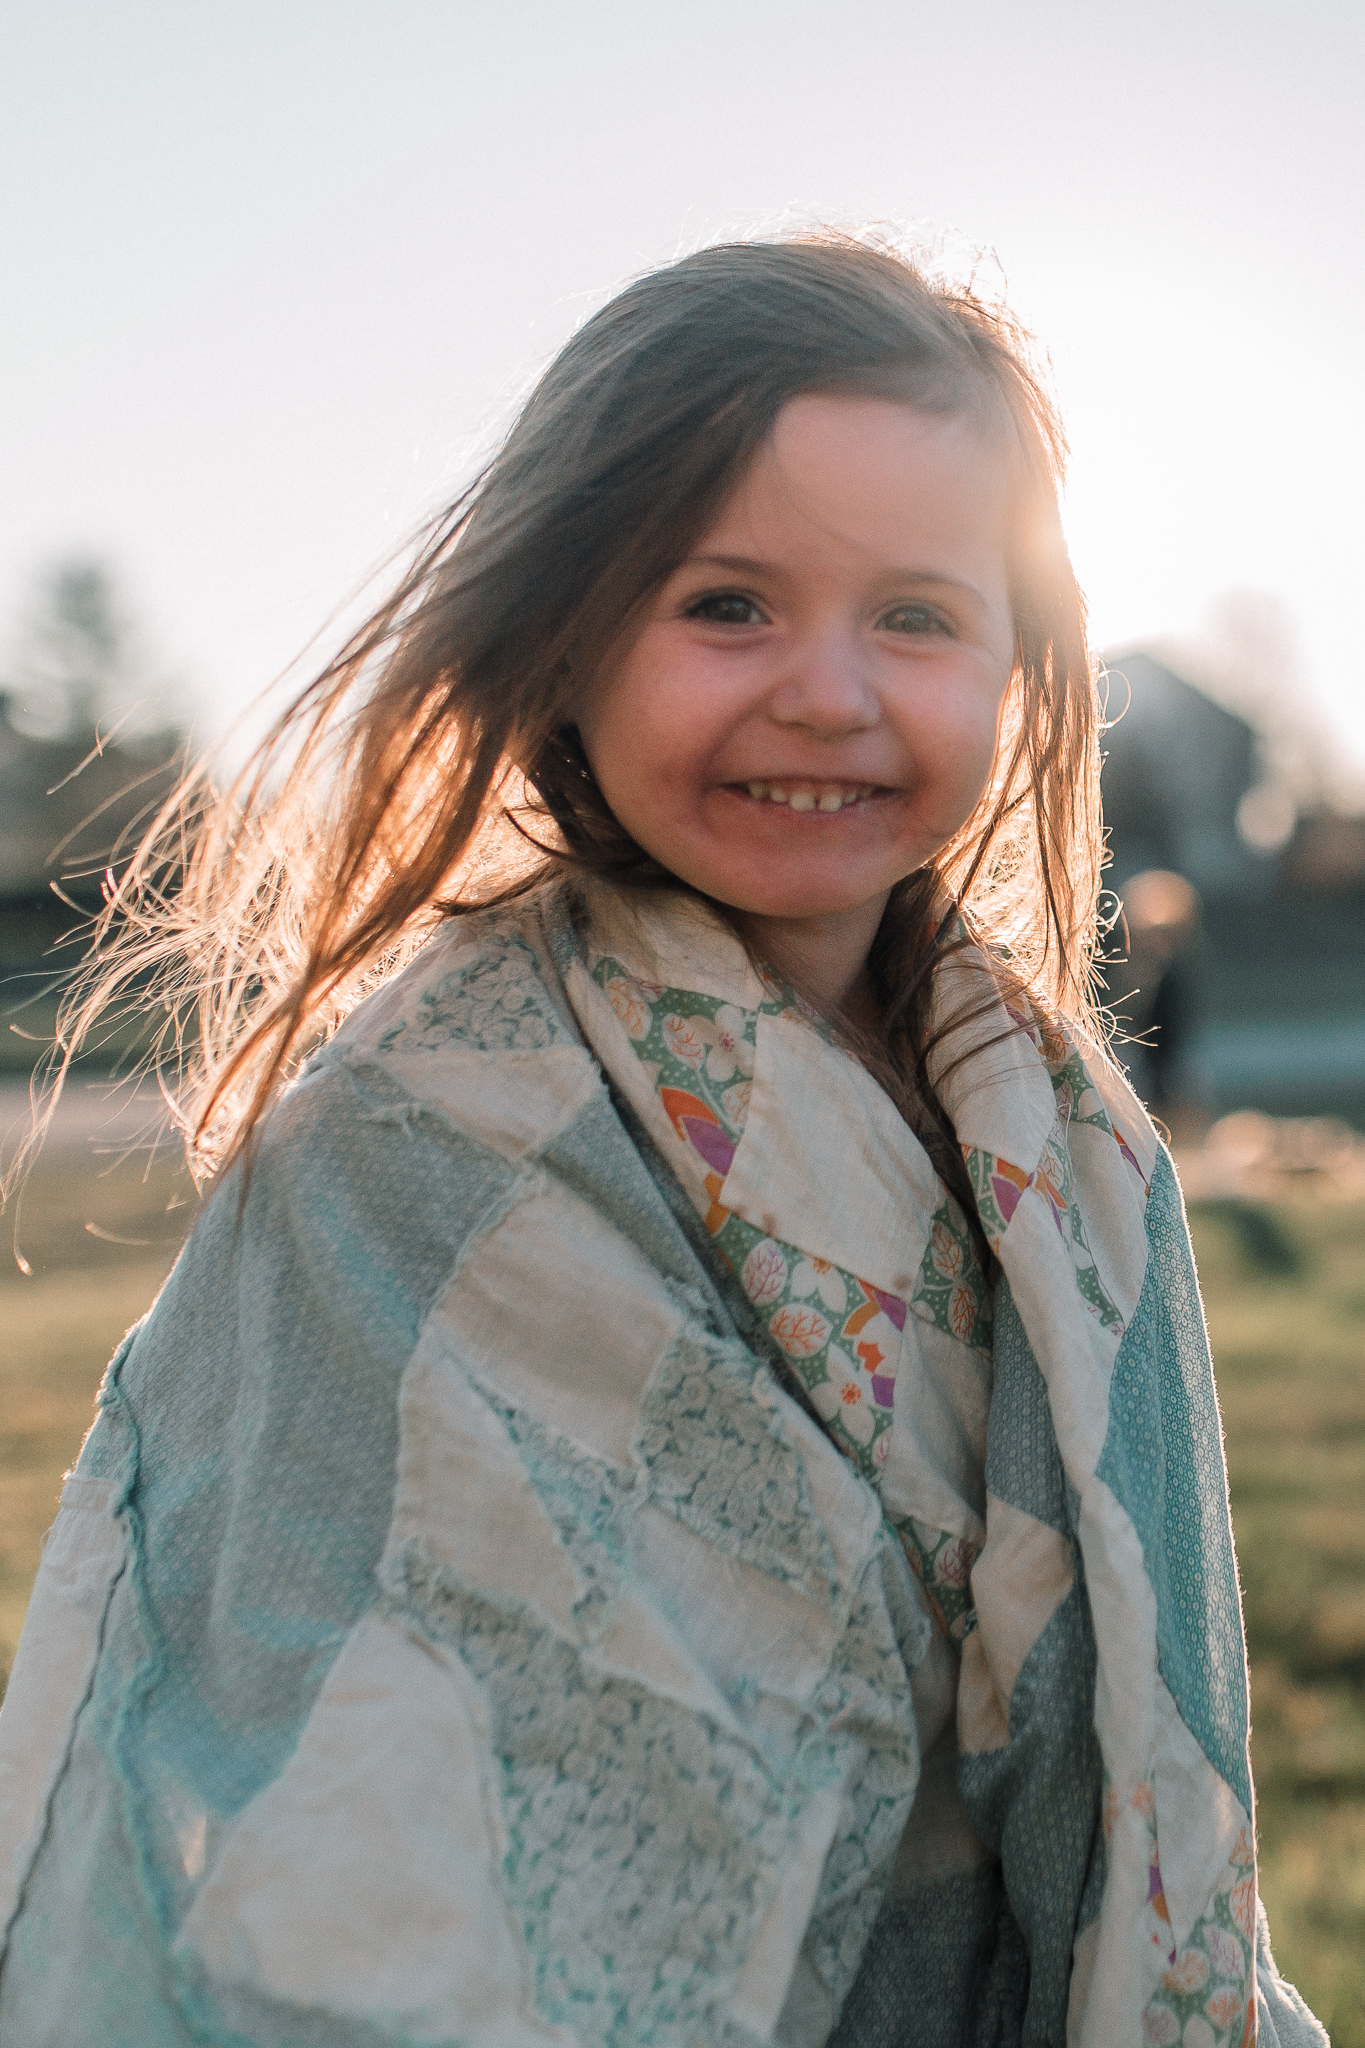 girl sunset golden hour quilt lifestyle documentary family Ashburn Loudoun northern Virginia  childhood Marti Austin Photography